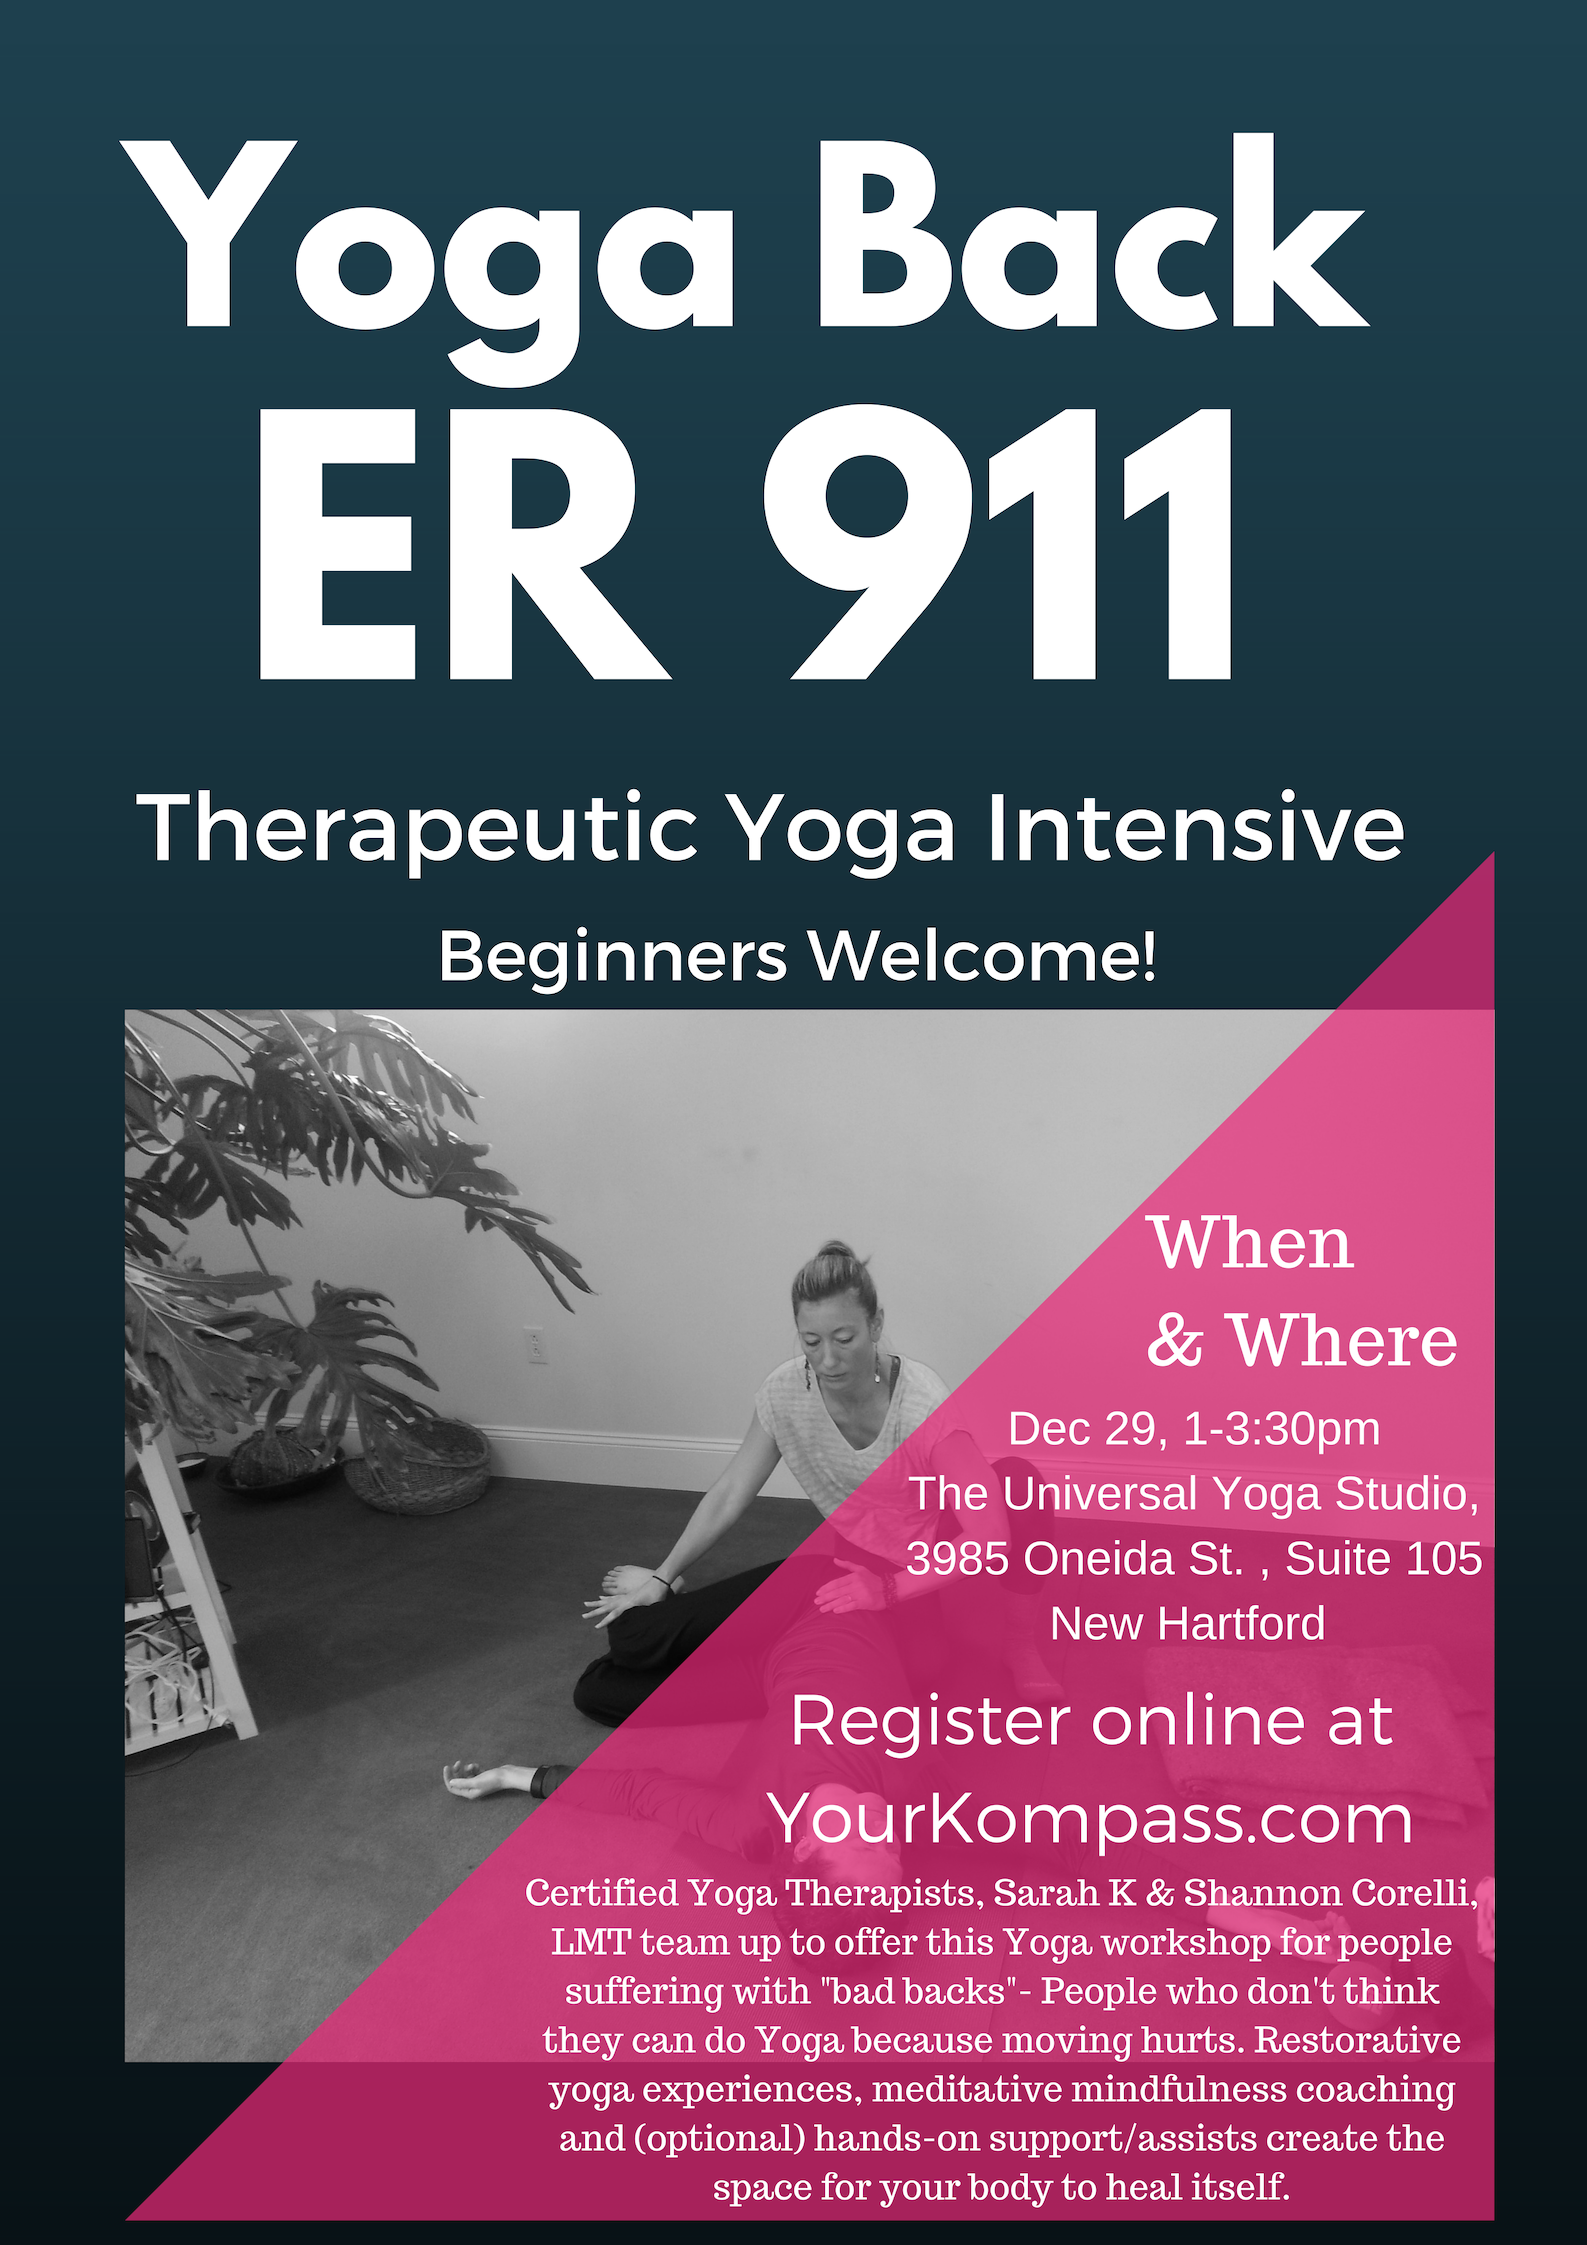 Yoga & Massage - It's a brilliant partnership and an excellent class experience with Sarah and LMT, Shannon Corelli. The class will fill, so reserve your spot now! $45.